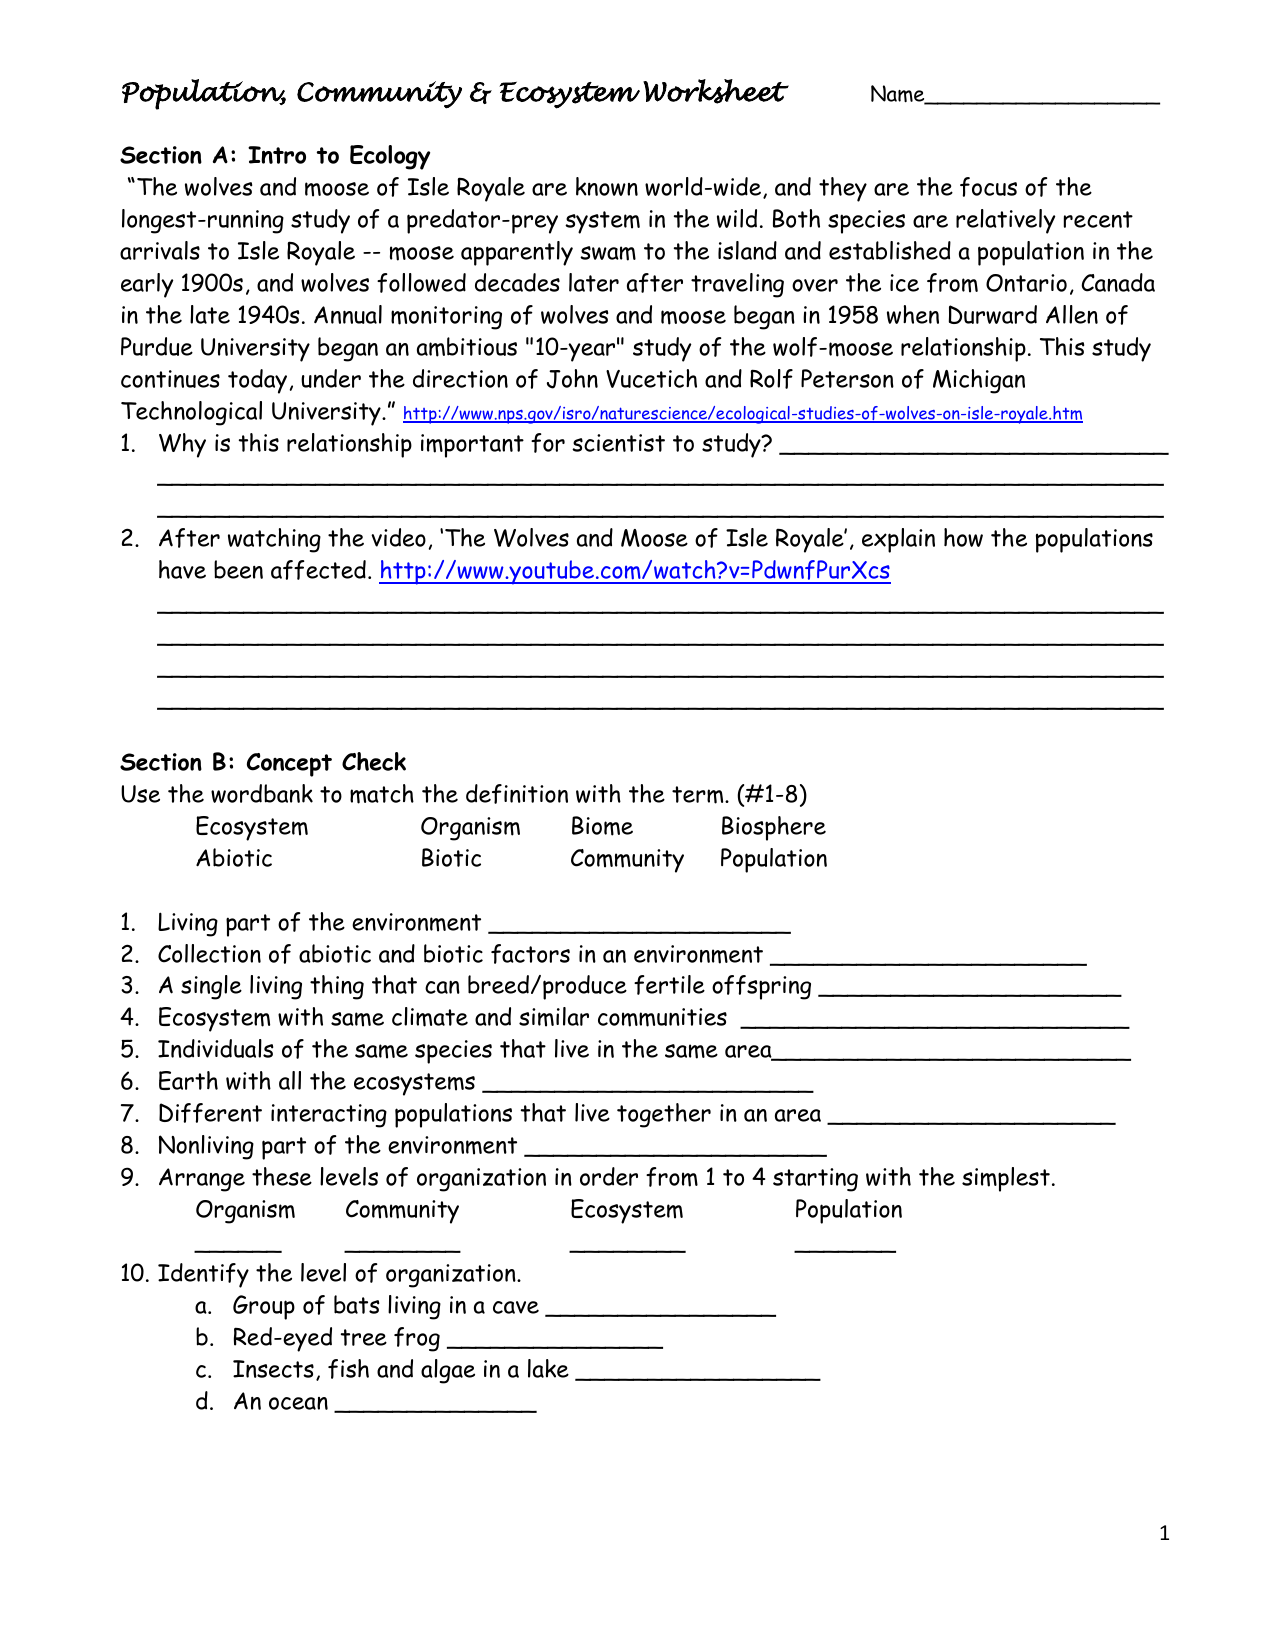 Ecosystems Worksheet Answers The Best Worksheets Image Collection